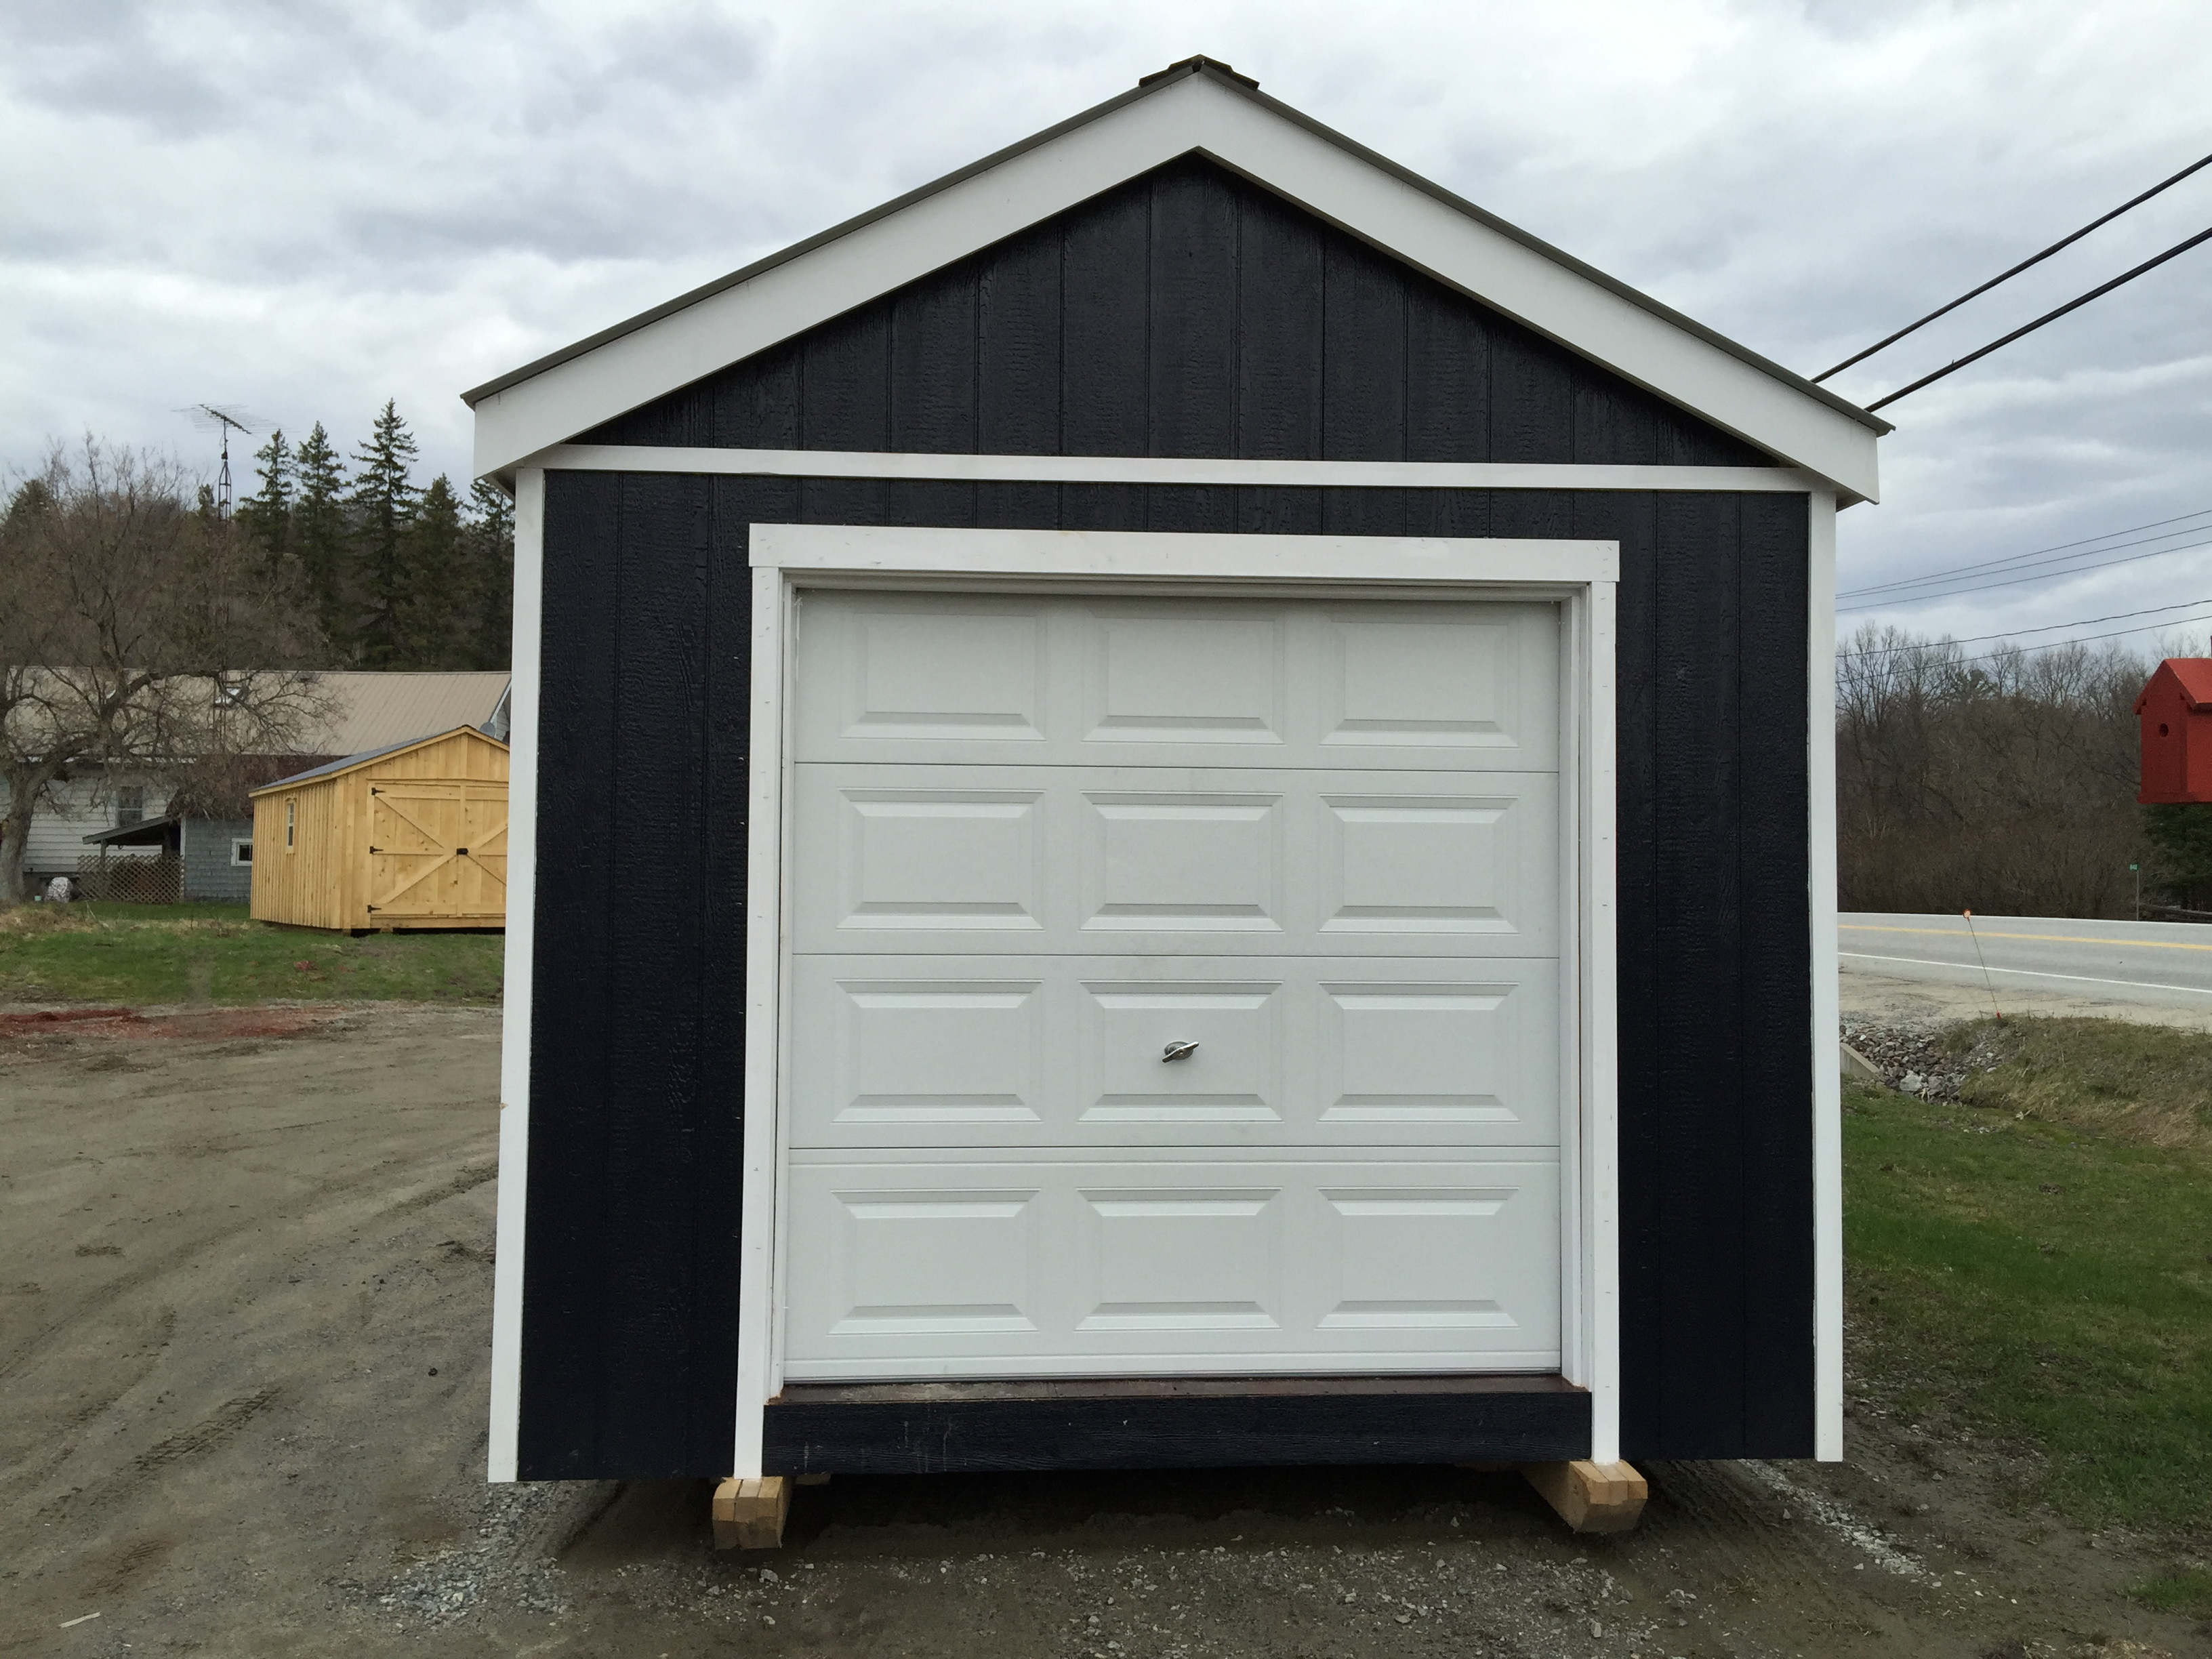 structures sheds amish garage small shed storage barns portable